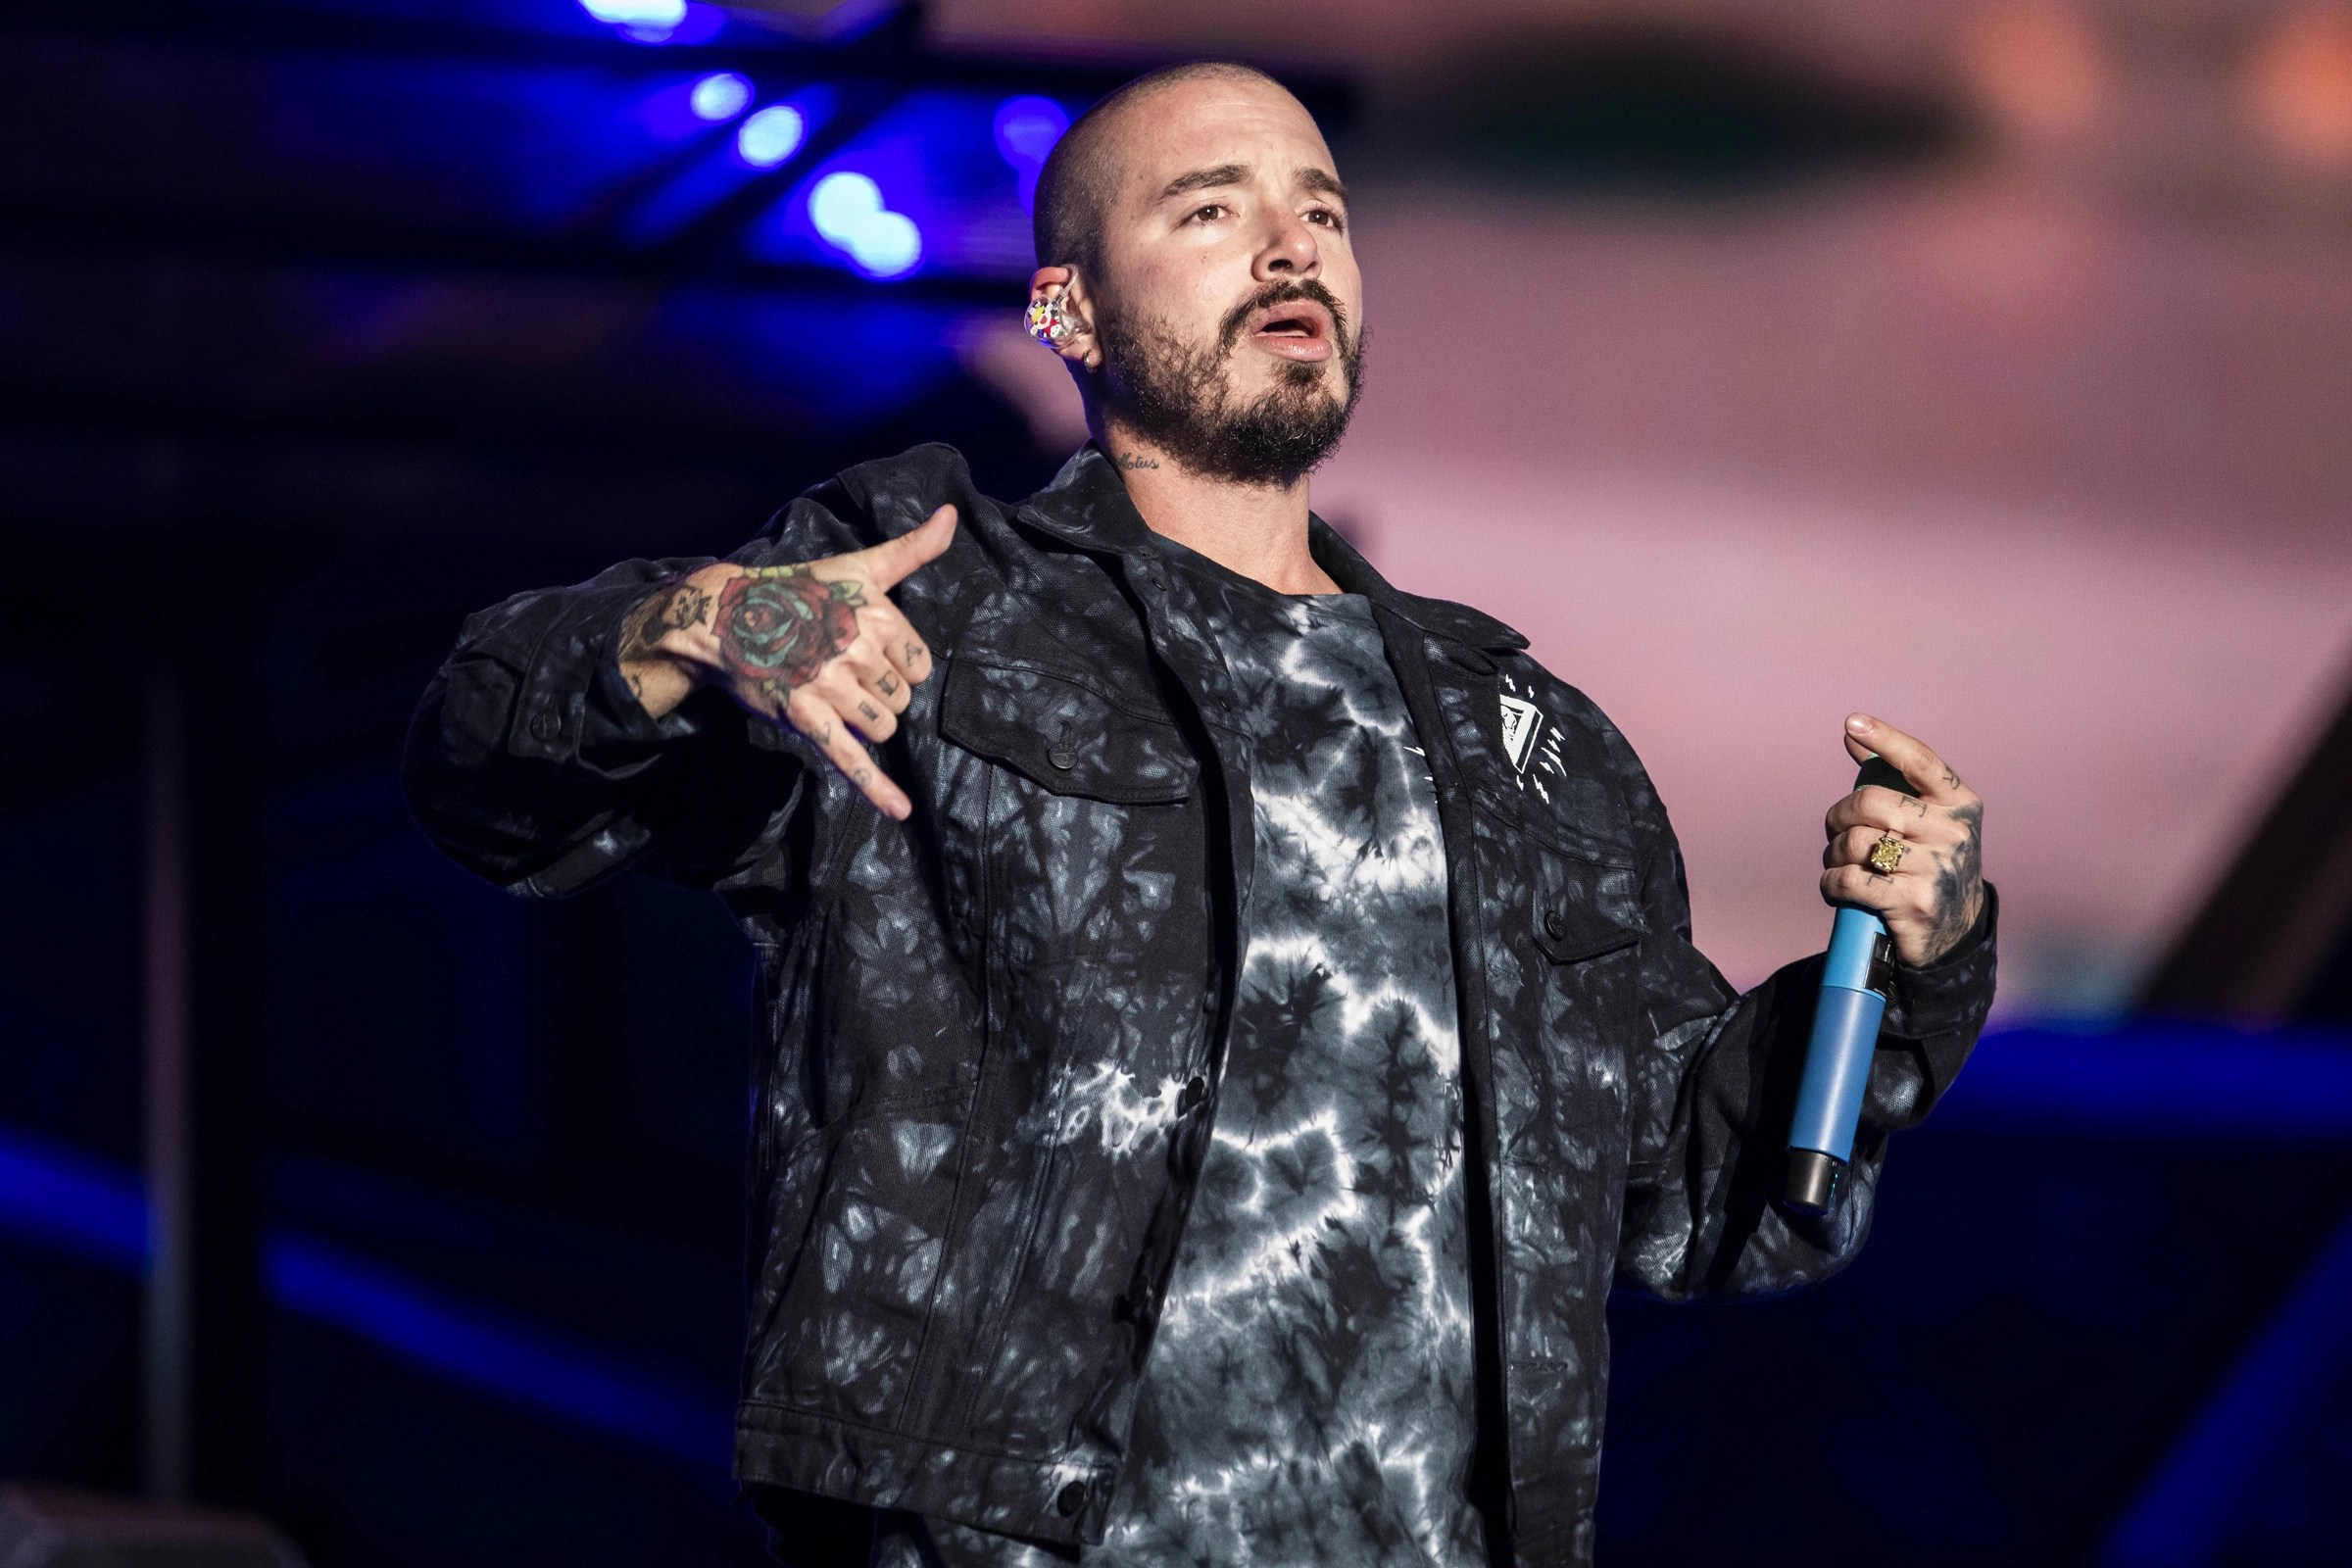 His previous albums have hit the billboard top charts and he continues to be one of the most streamed artists in the world. J Balvin New Album 'Colores' Set for March Release